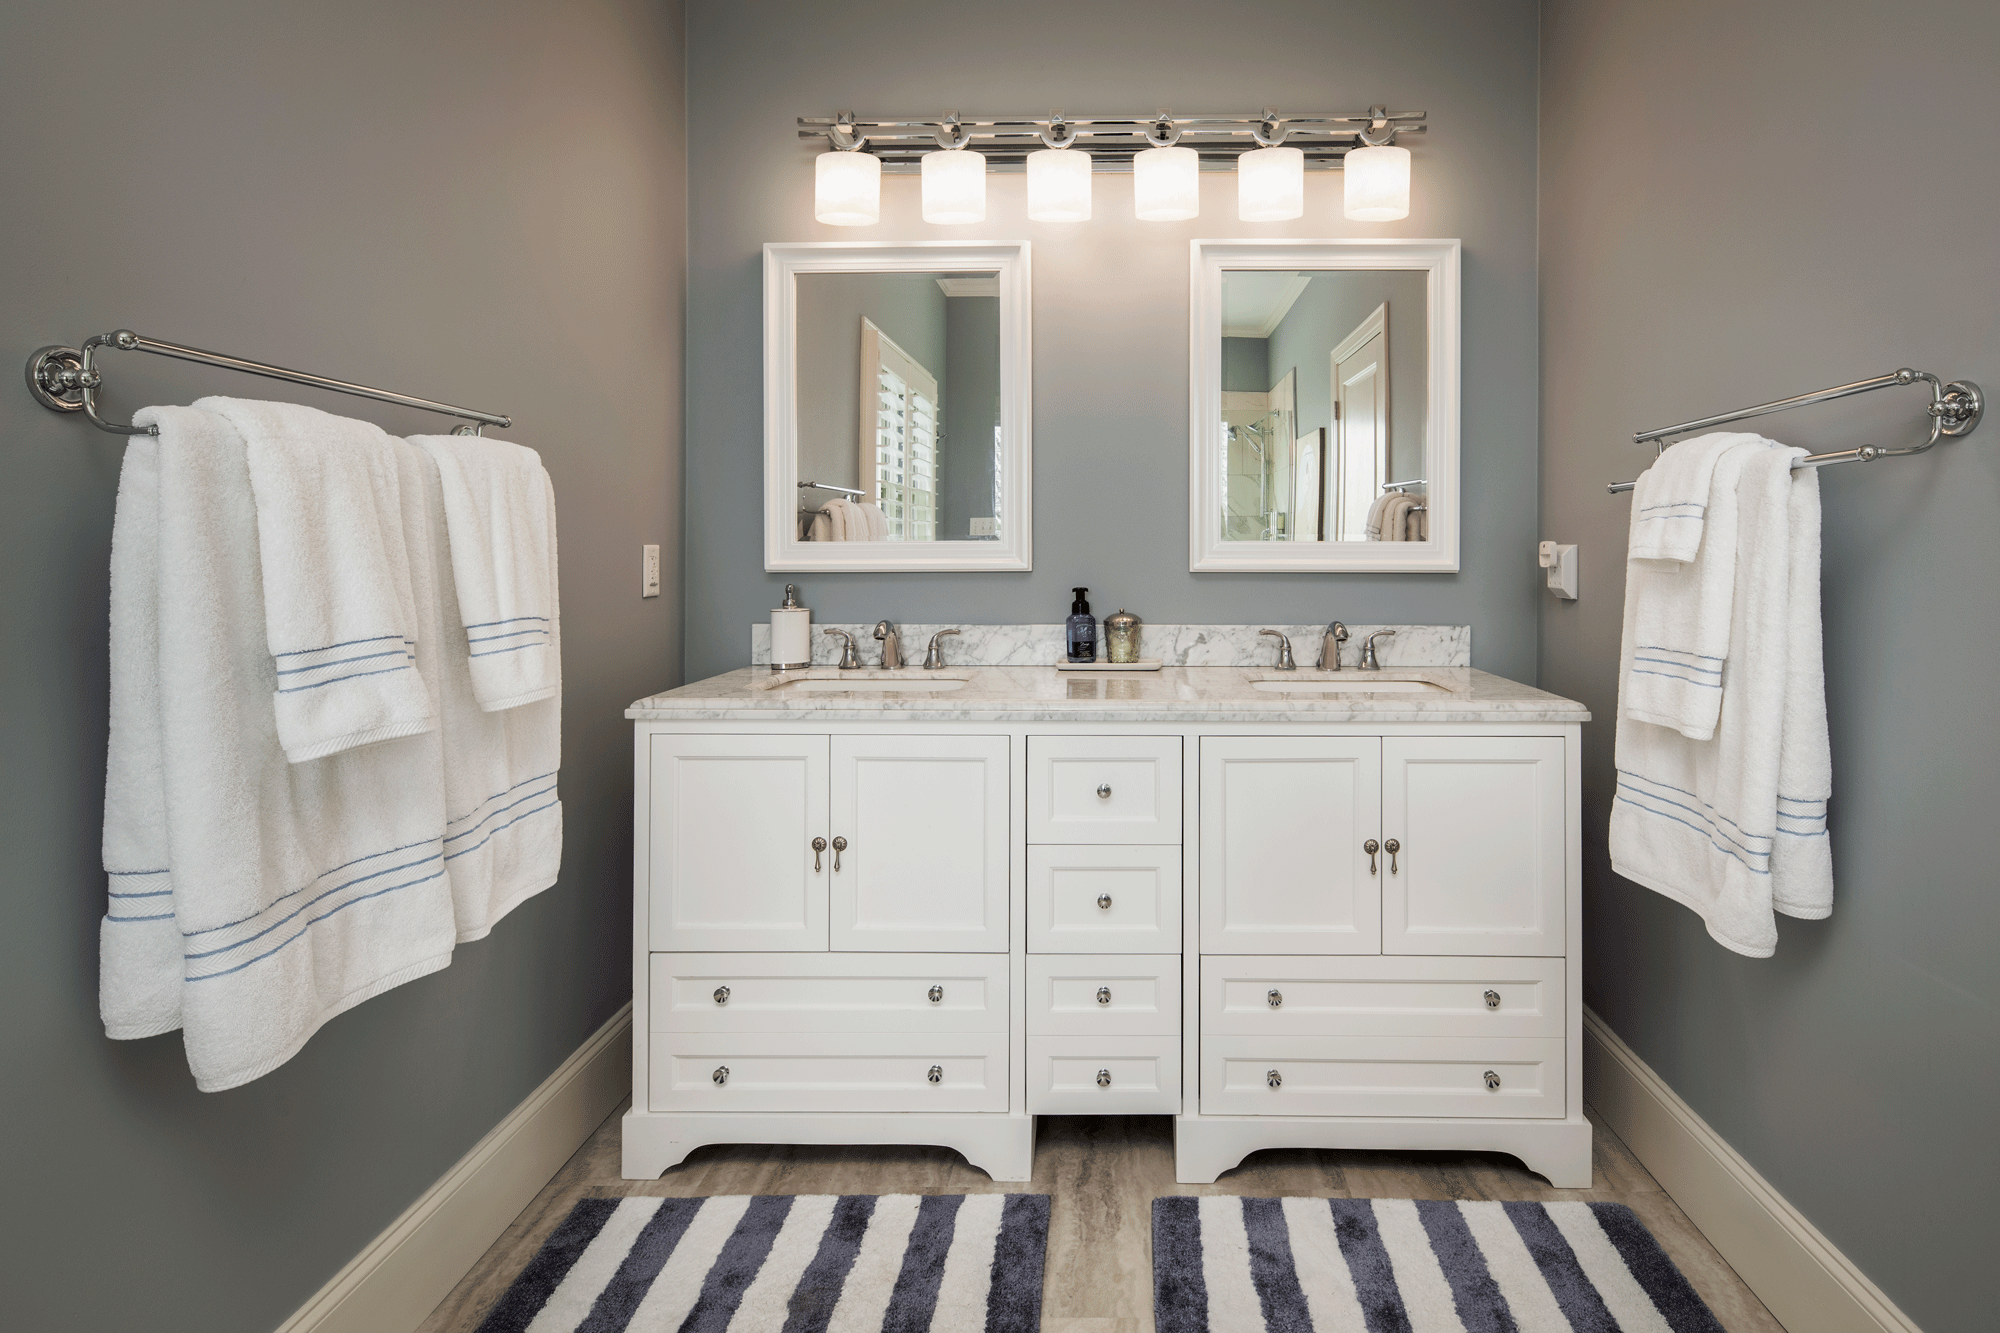 bathroom remodel with decor, cabinets, and lighting